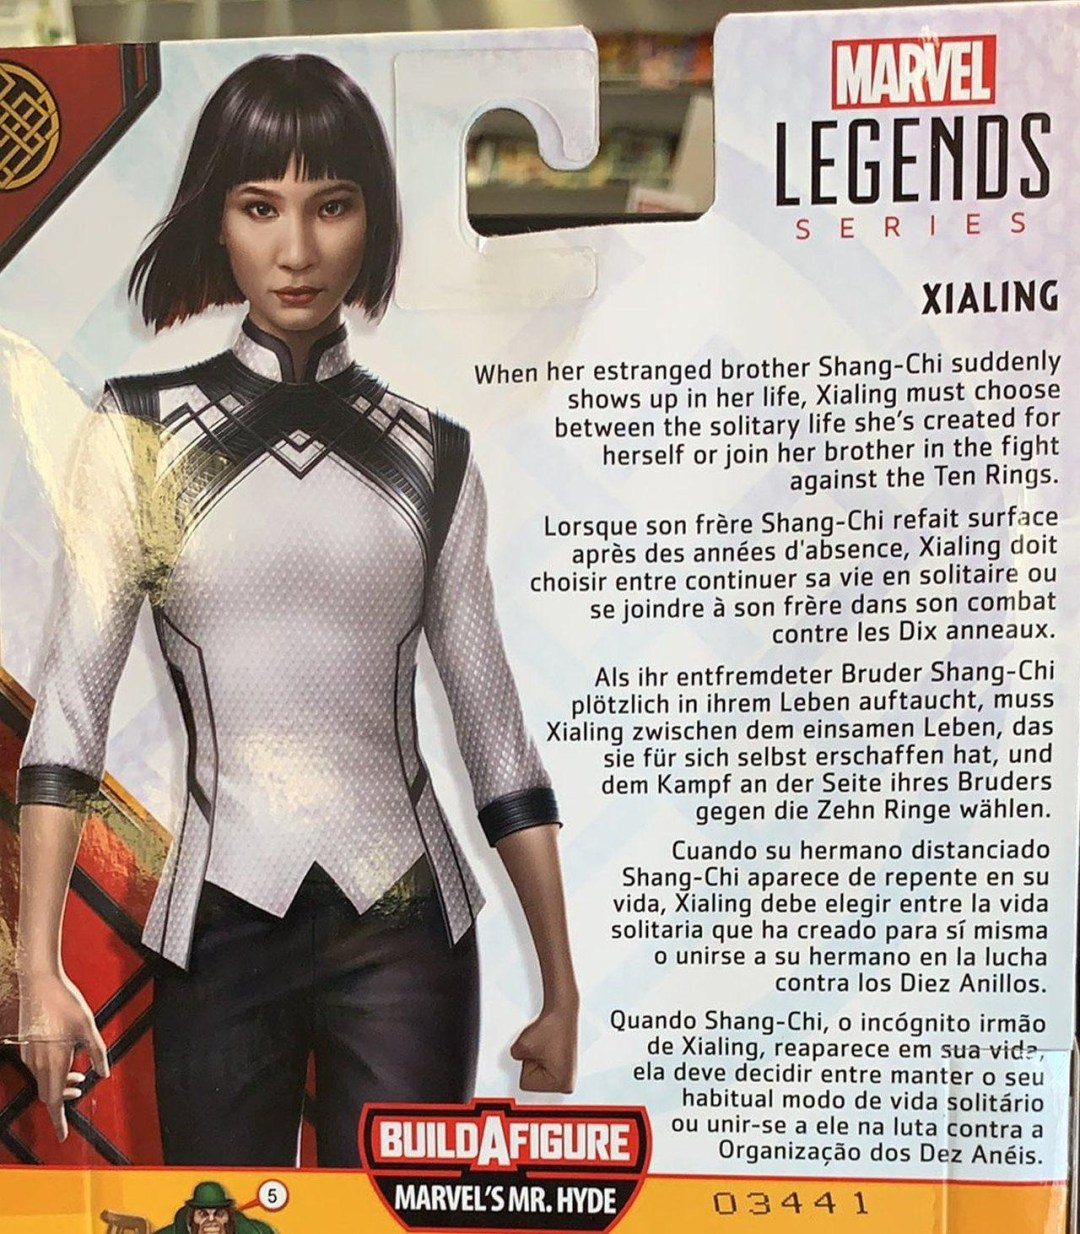 Shang-Chi and the Legend of the Ten Rings Xialing